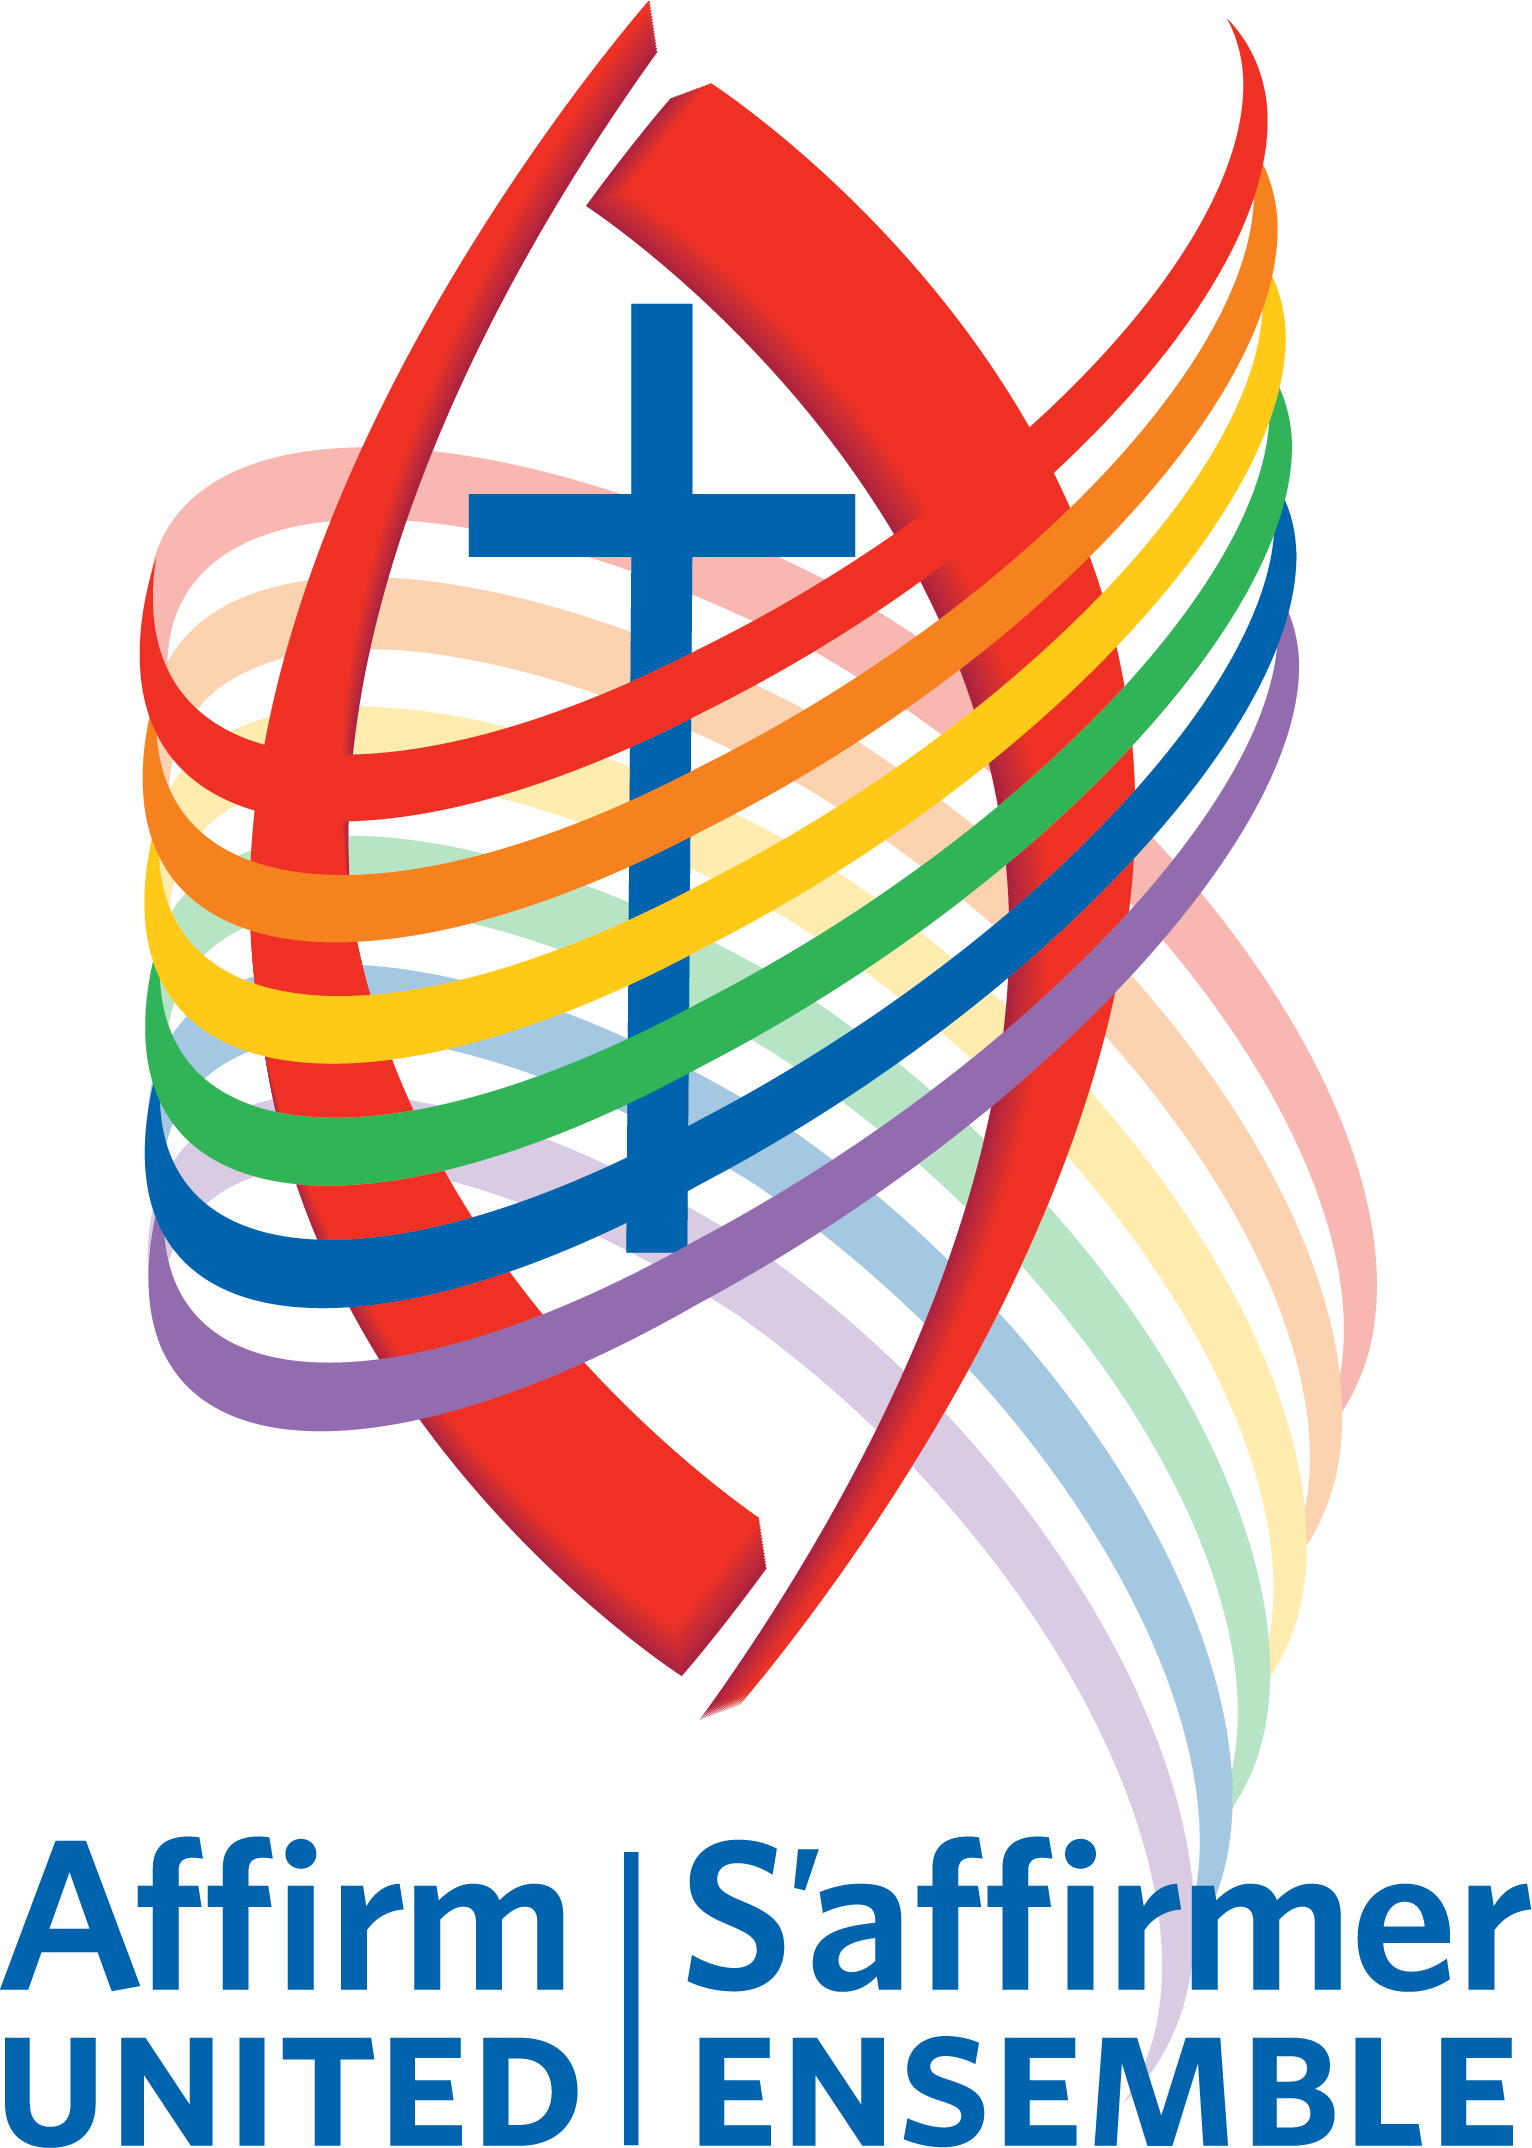 Affirm United logo: a blue cross surrounded by a rainbow swirl